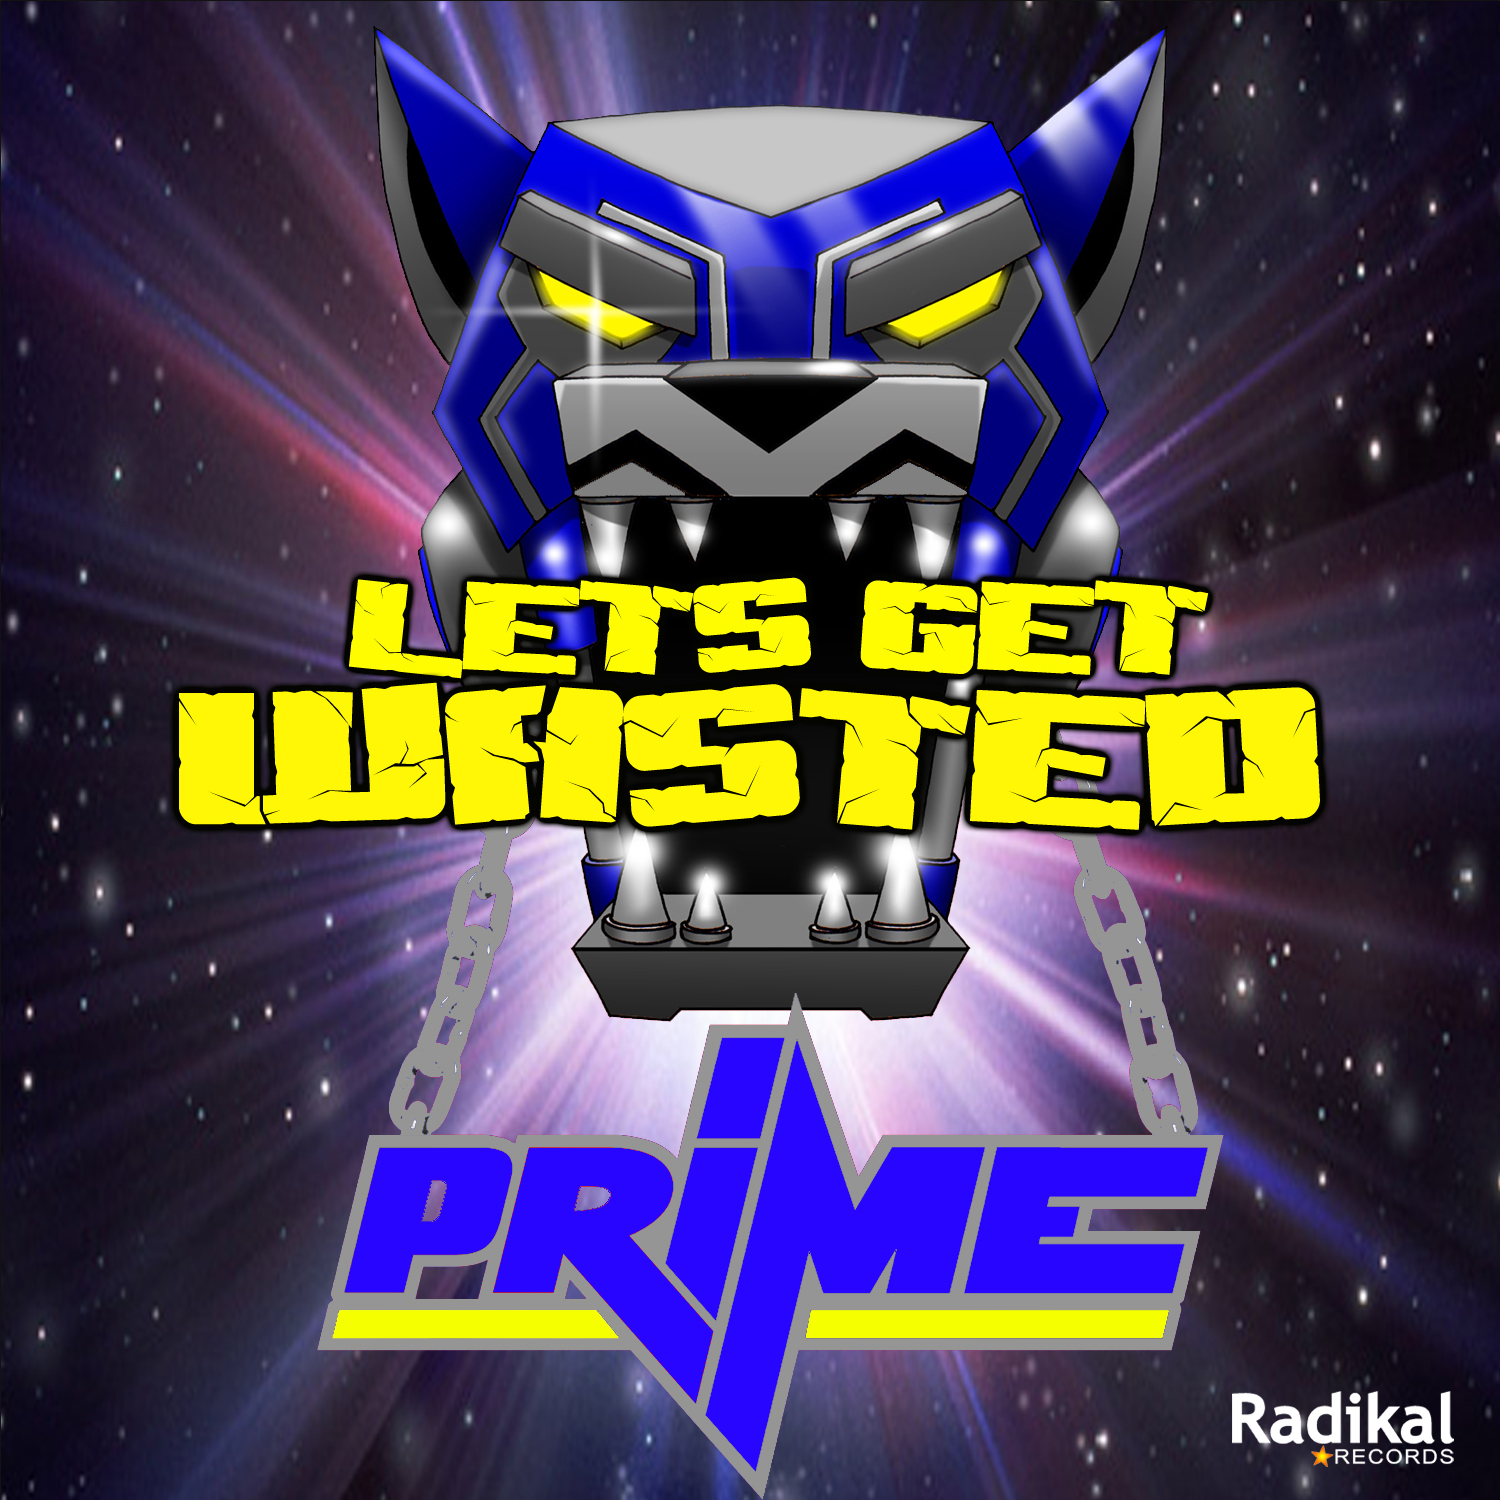 DJ Prime - Let's Get Wasted